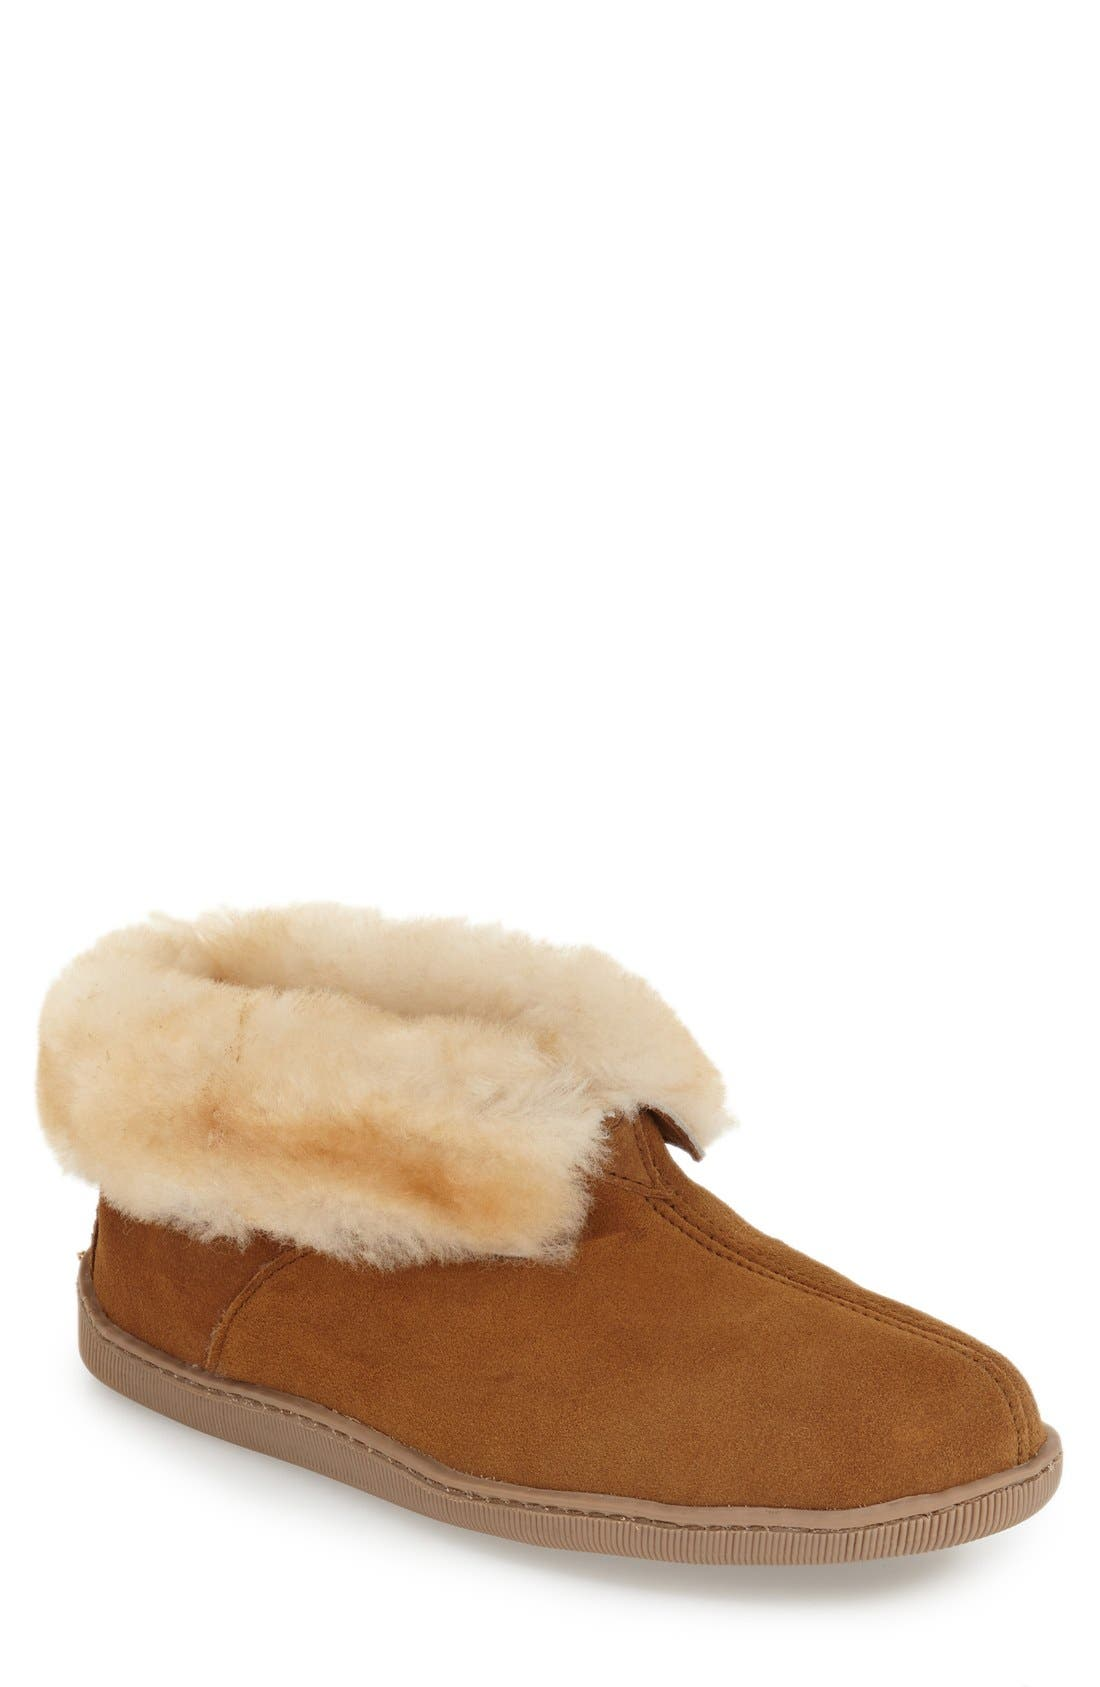 Genuine Shearling Lined Ankle Boot,                         Main,                         color, GOLDEN TAN